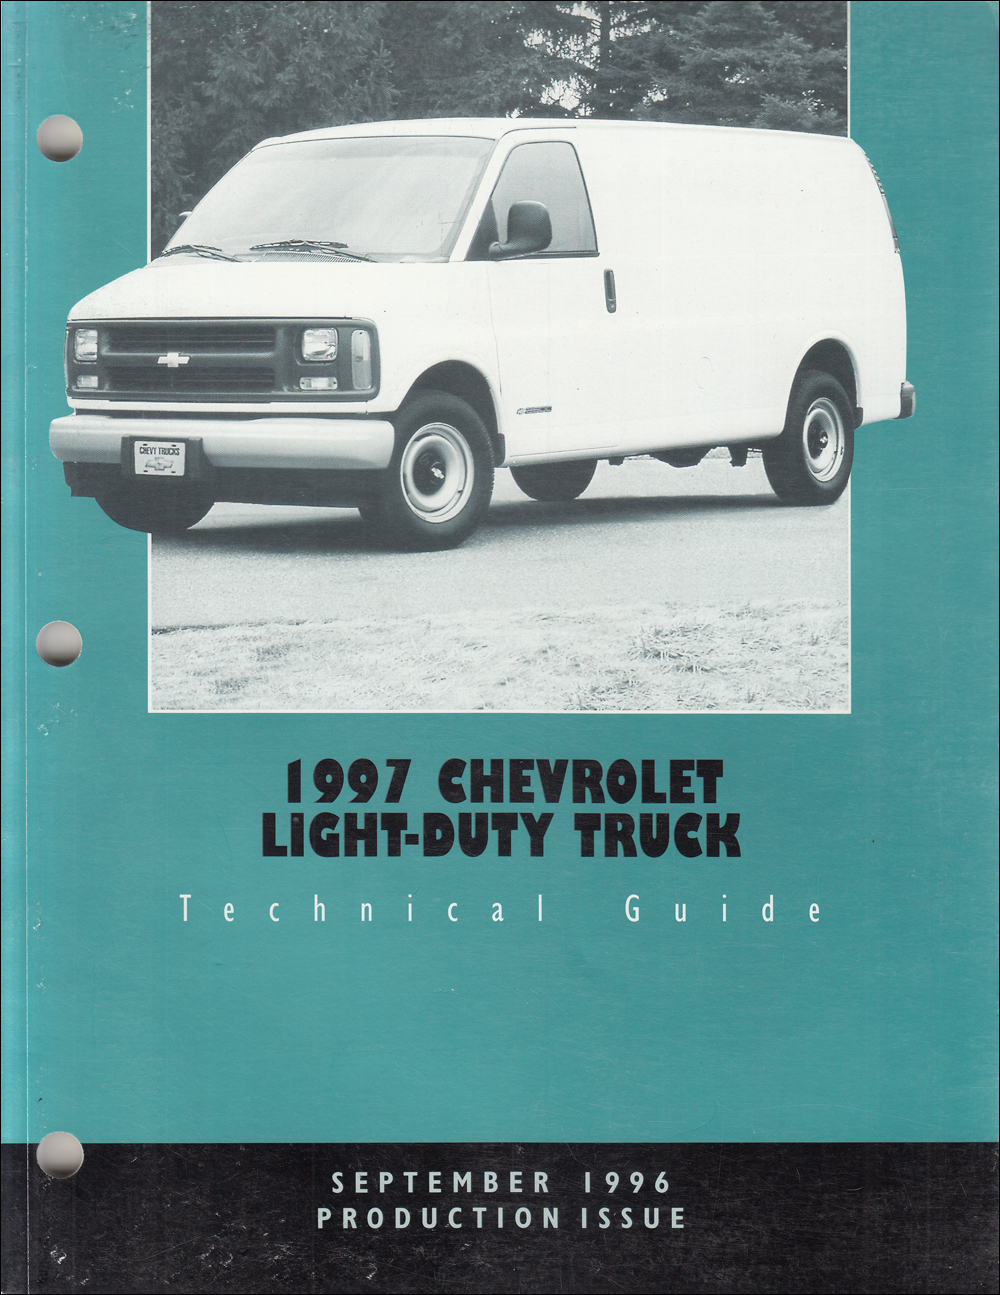 1997 Chevrolet Truck Technical Guide Dealer Album Original Production Issue